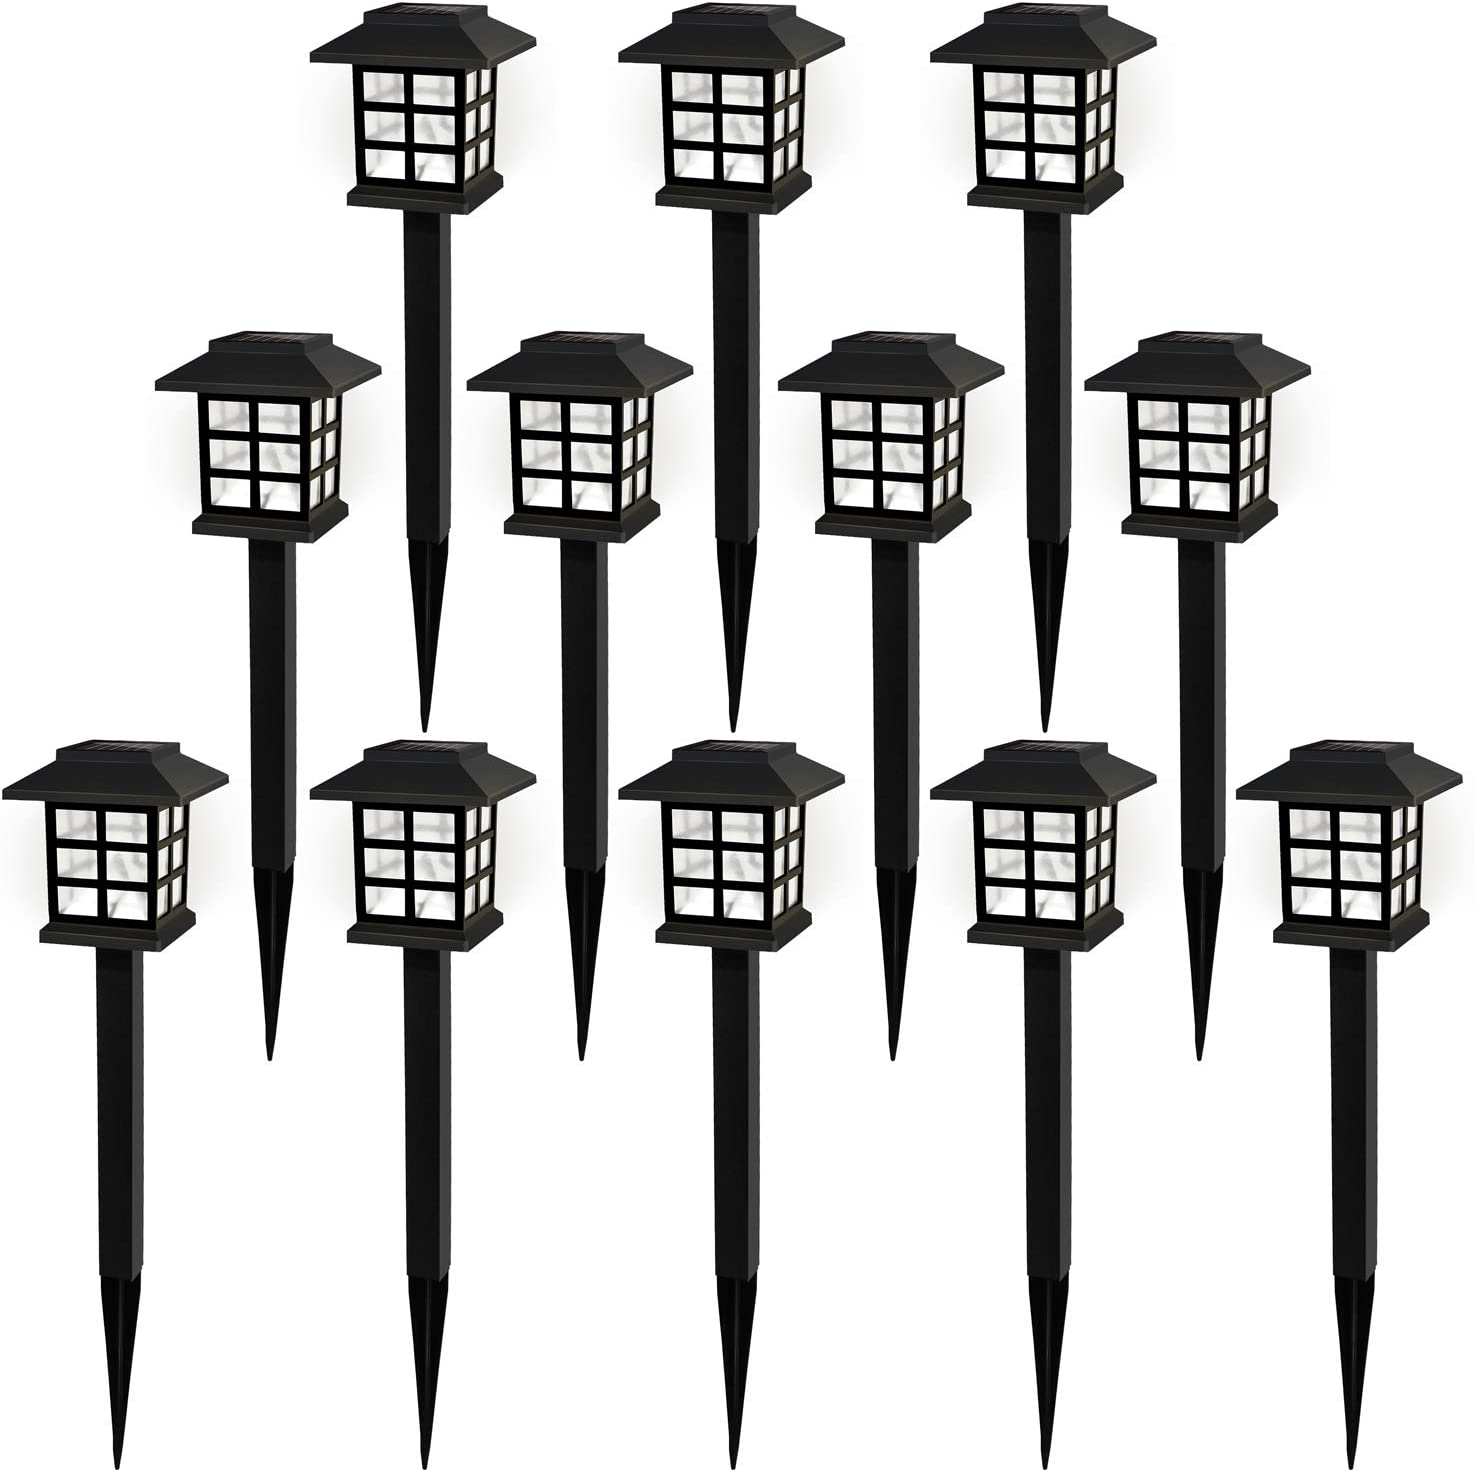 Solar Pathway Lights Outdoor Garden Lights Solar Powered Led Lawn Landscape Decoration Waterproof for Walkway Yard Driveway Backyard White Light Cold White 12 Pack